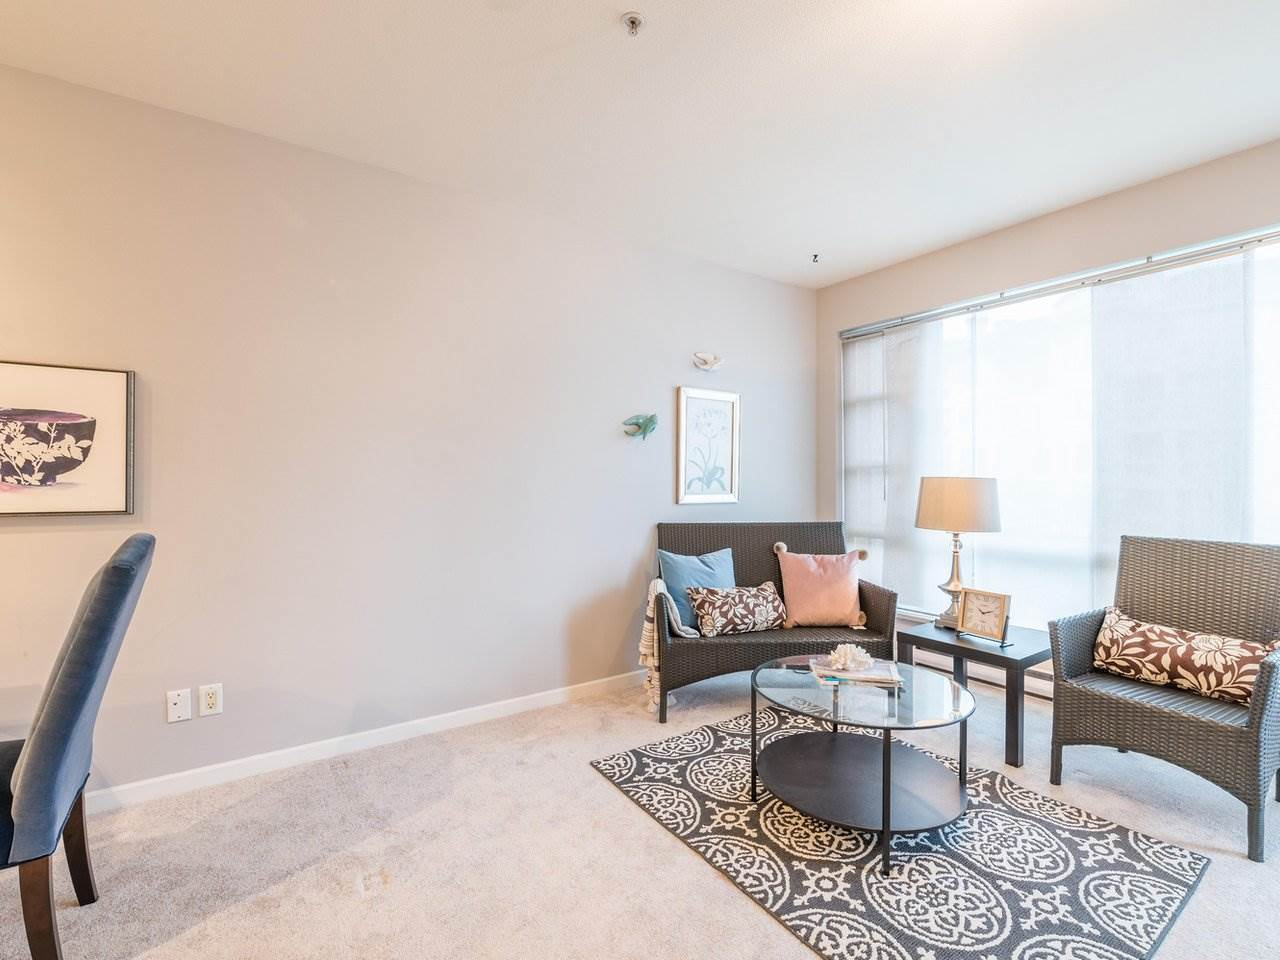 412 3629 DEERCREST DRIVE - Roche Point Apartment/Condo for sale, 1 Bedroom (R2525424) - #20